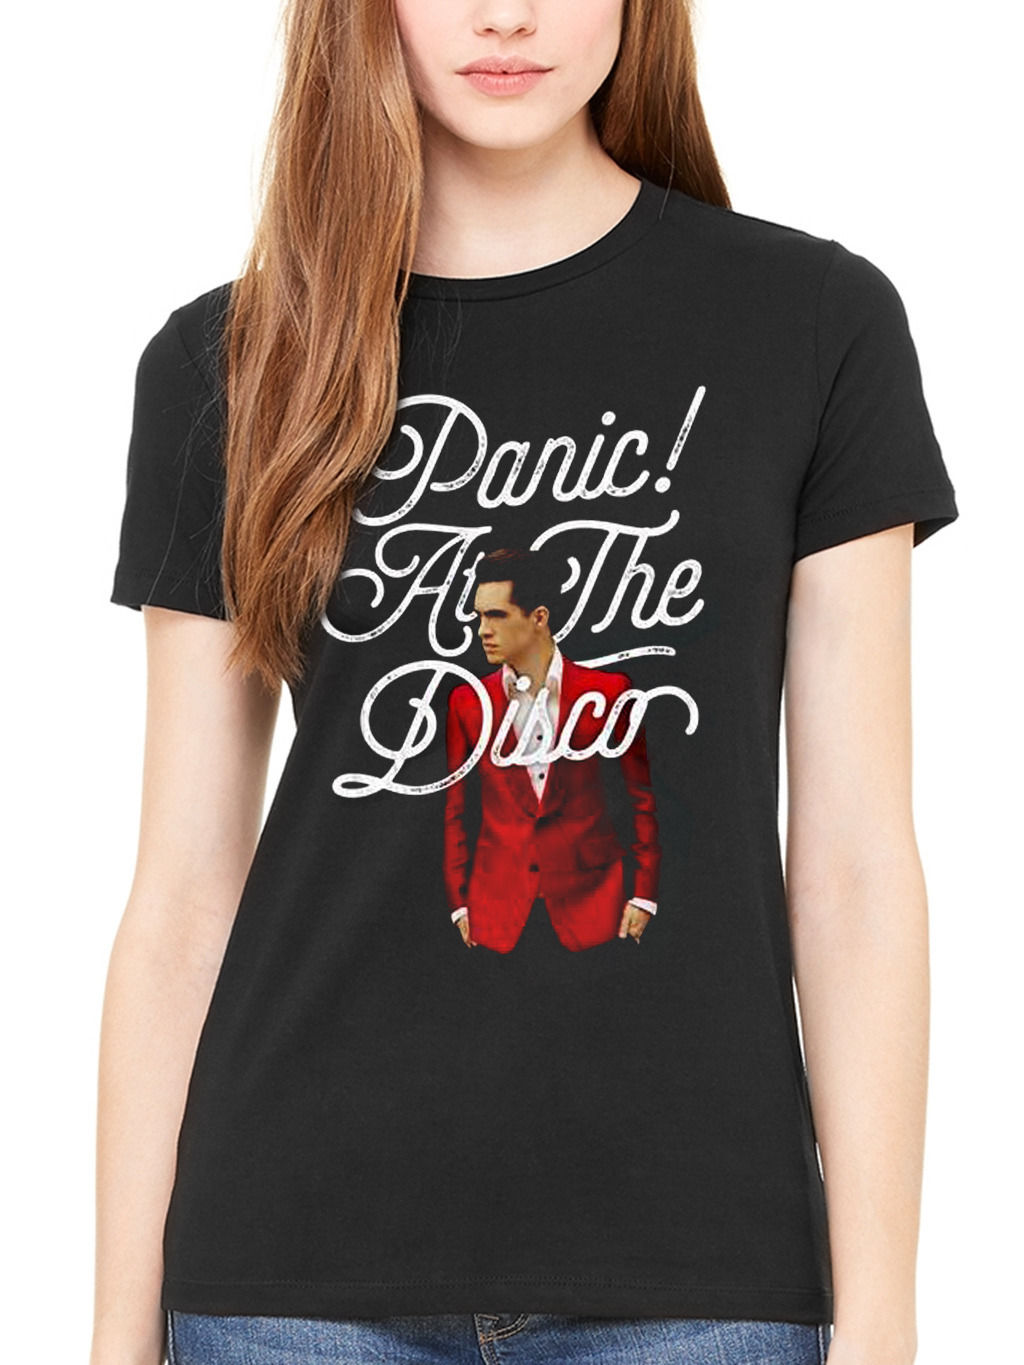 Official Panic! At The Disco Brendon Urie Womens Fitted T-Shirt PATD New Merch